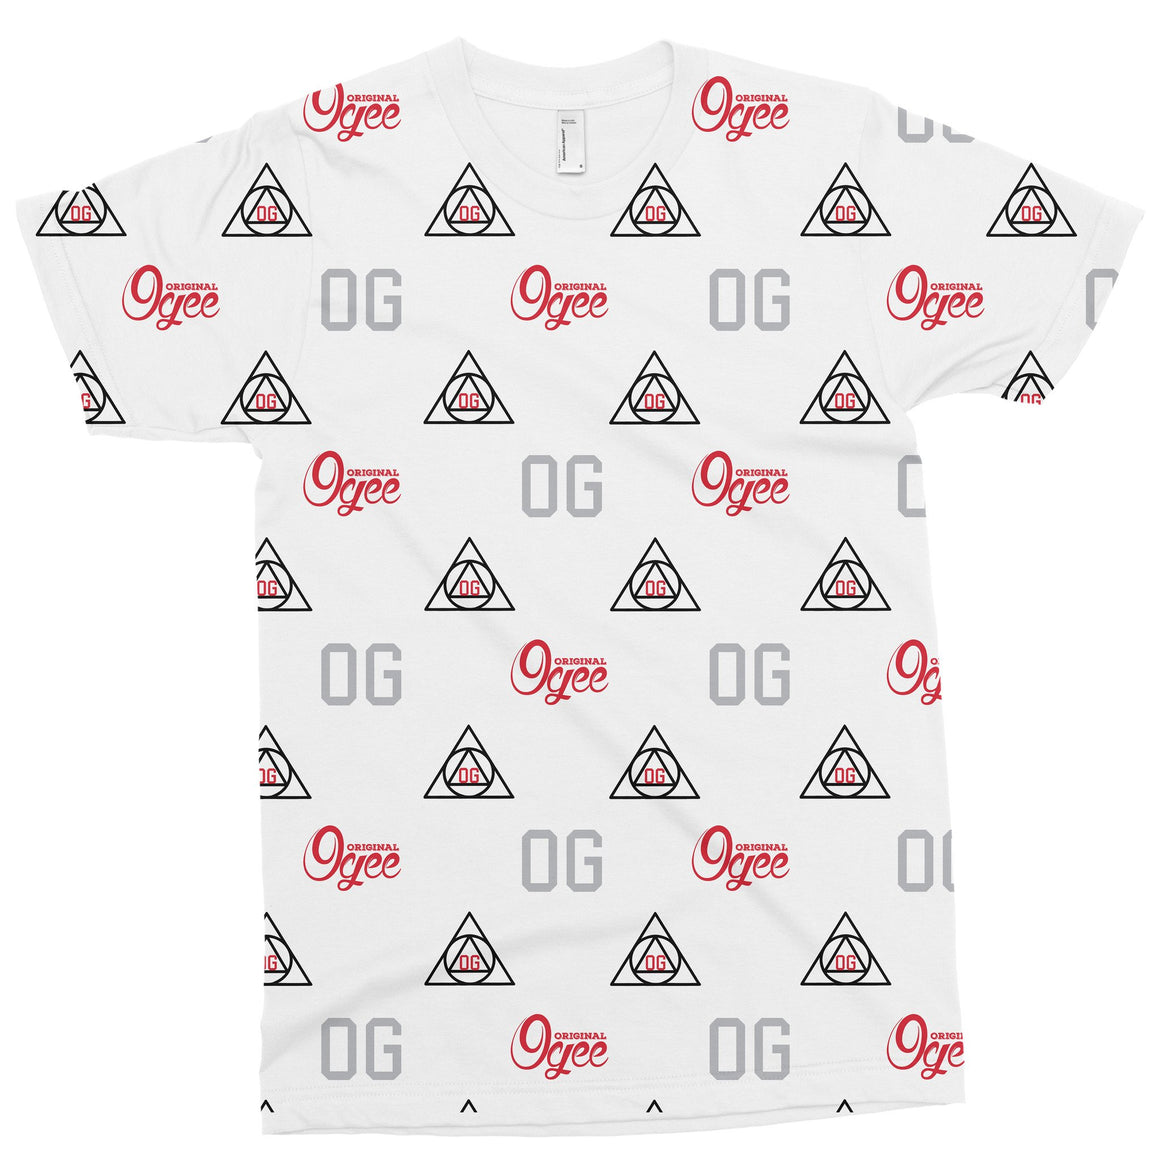 Ogee Ogs Red - Square Boy Clothing